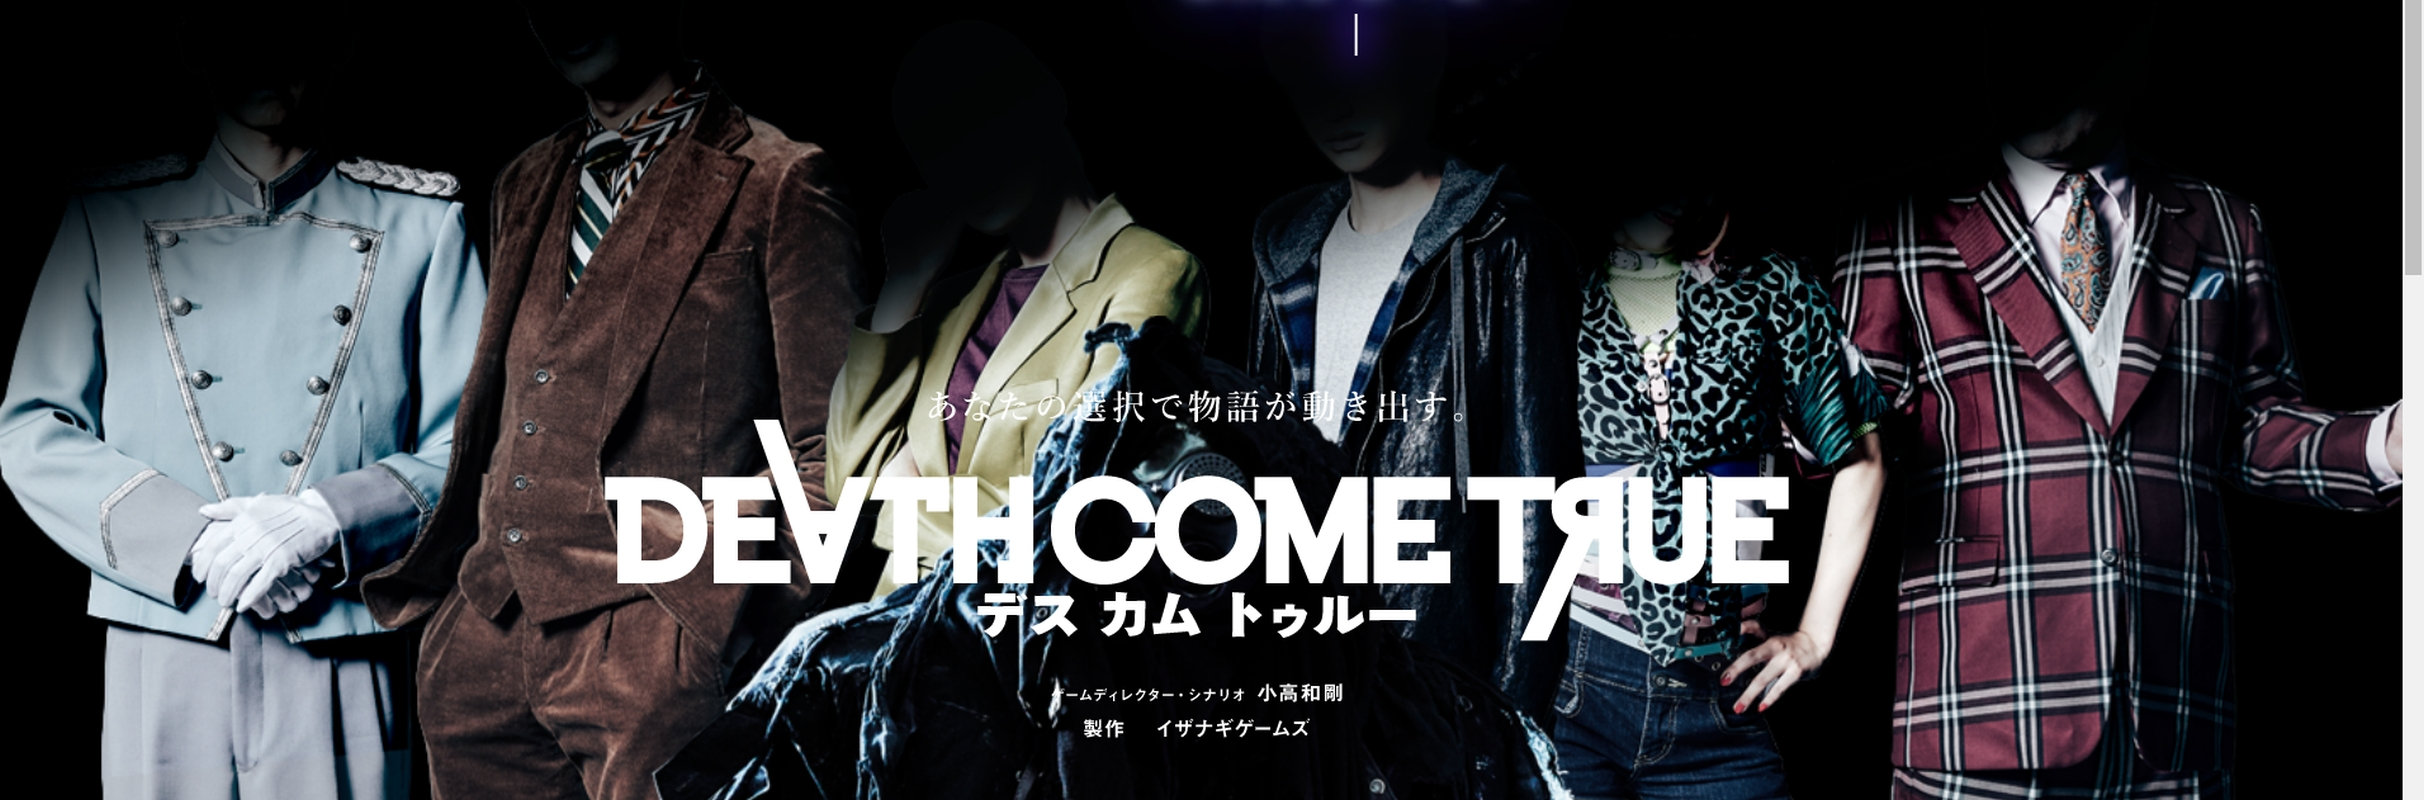 Danganronpa Creator Kazutaka Kodaka Announces New FMV Game Death Come True